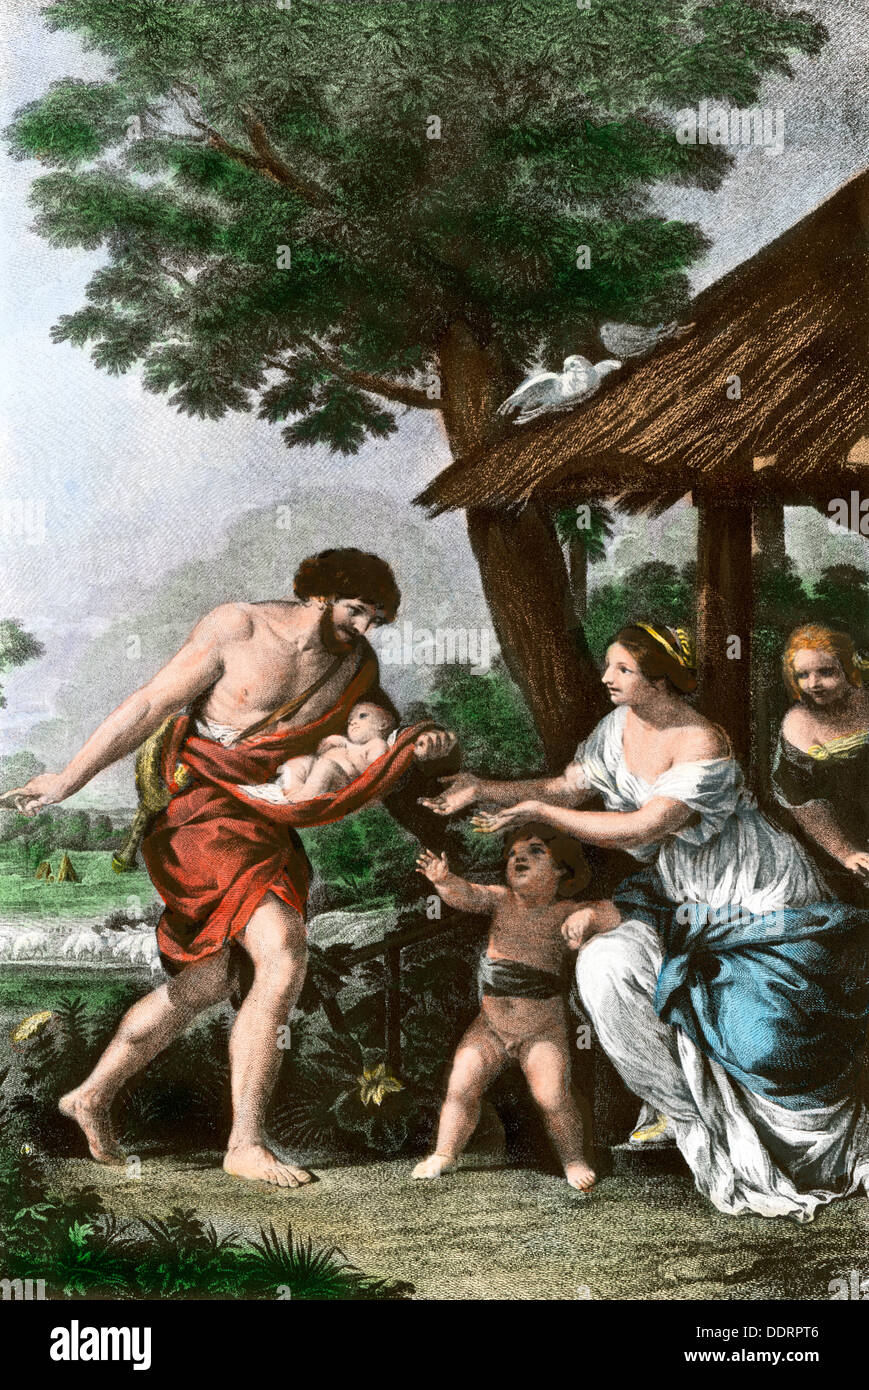 Discovery of the orphaned twins Romulus and Remus, who became the founders of Rome. Hand-colored halftone of an illustration - Stock Image